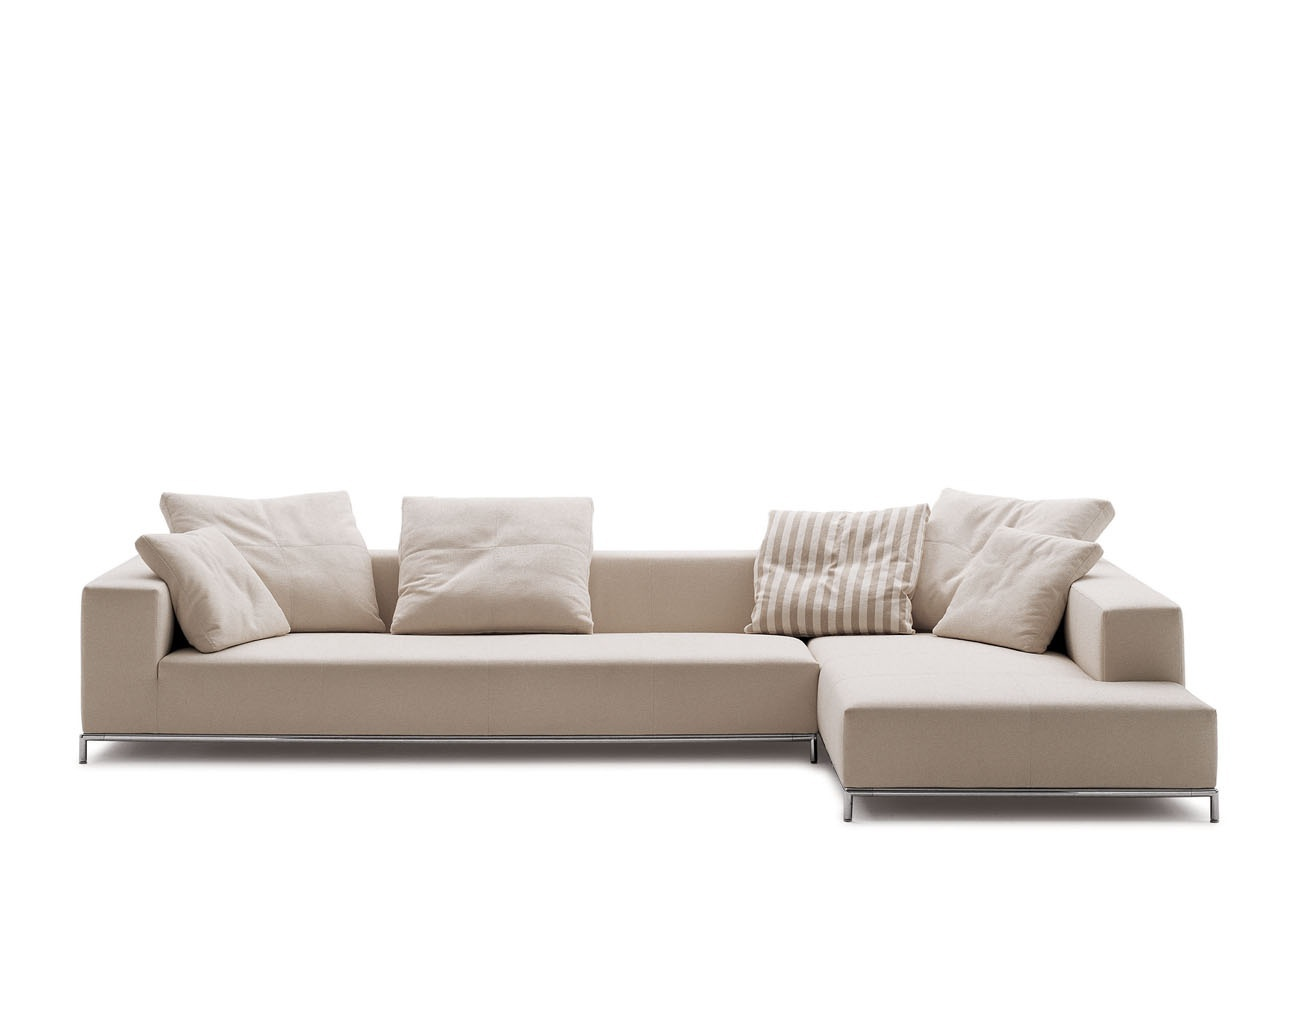 A Modular Sofa On A Frame Of Steel Upholstered In Leather Or